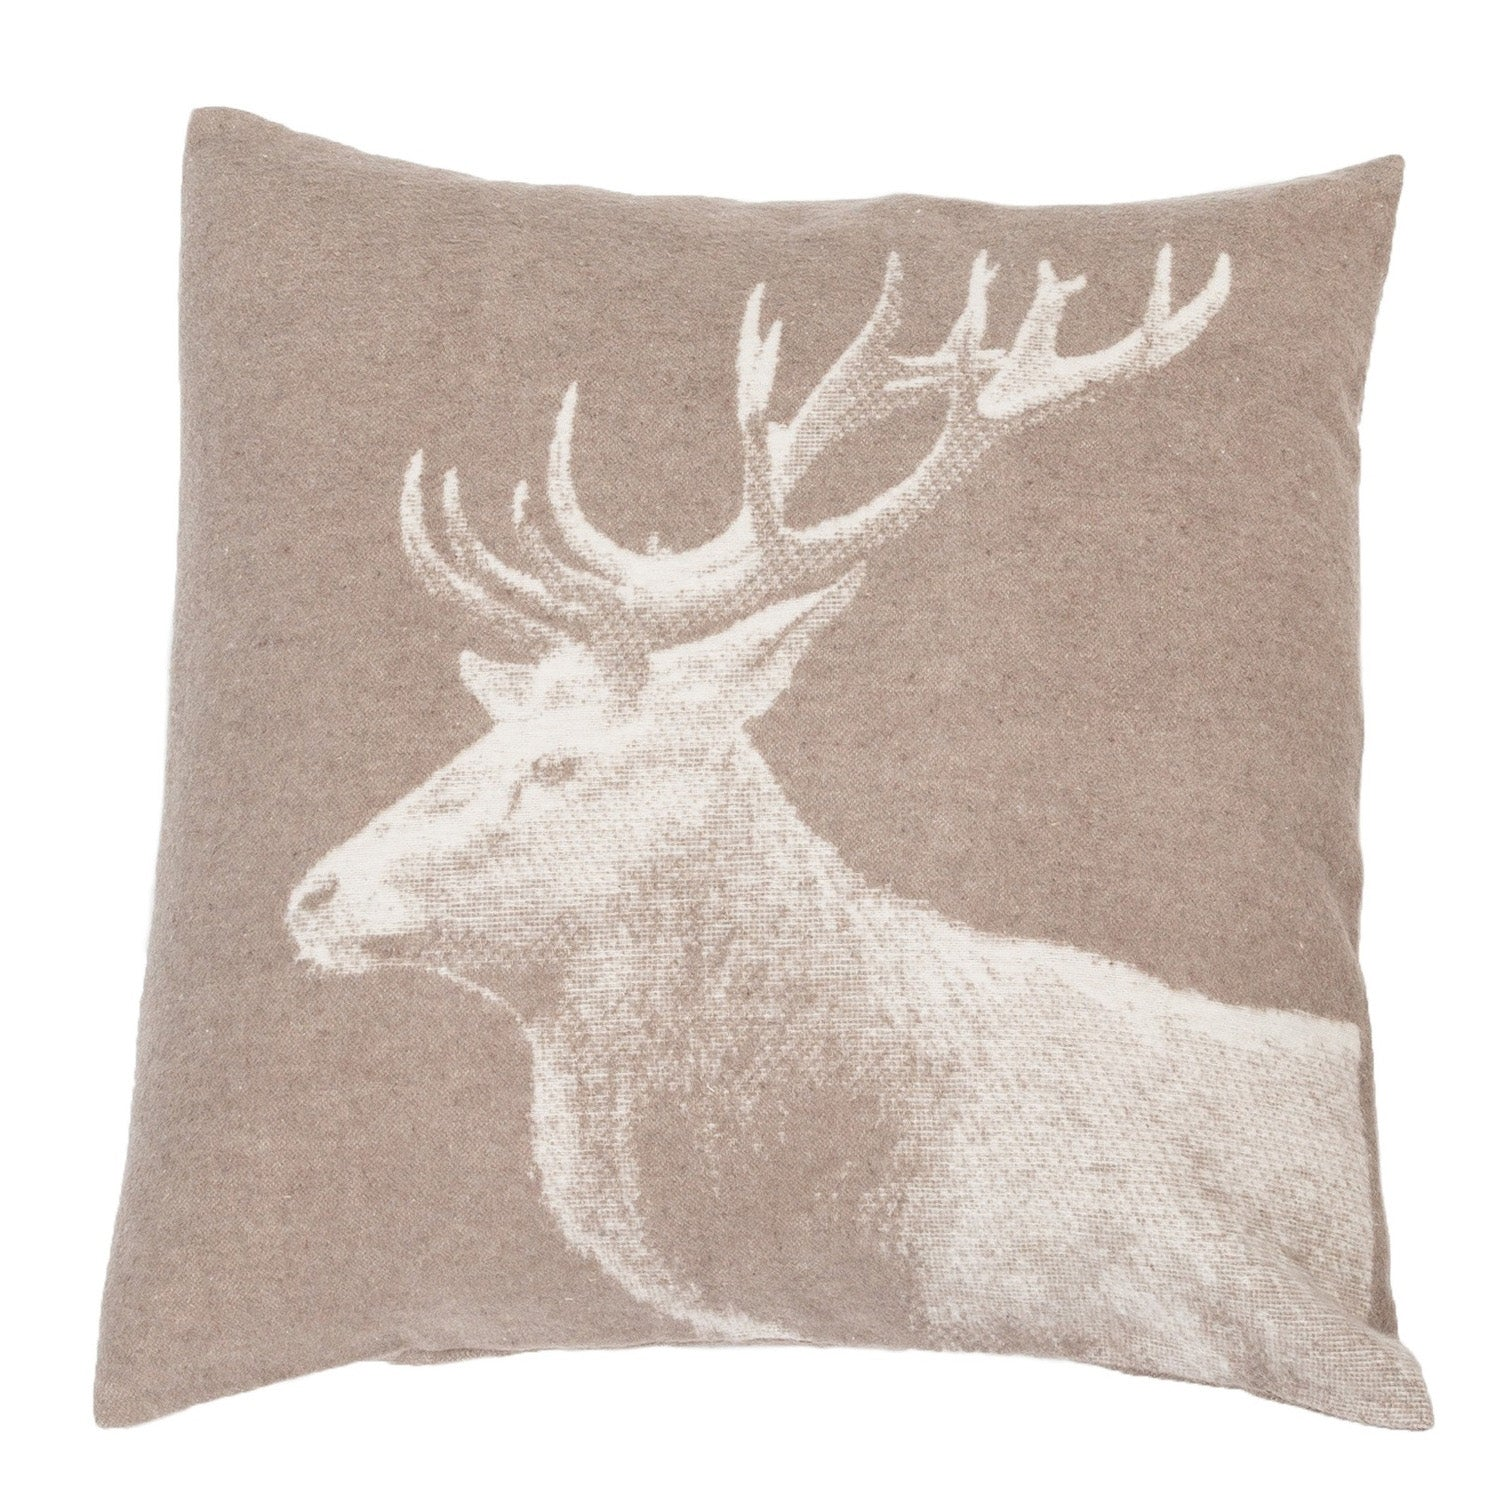 David Fussenegger Mud Stag Photo Cushion 50cm x 50cm